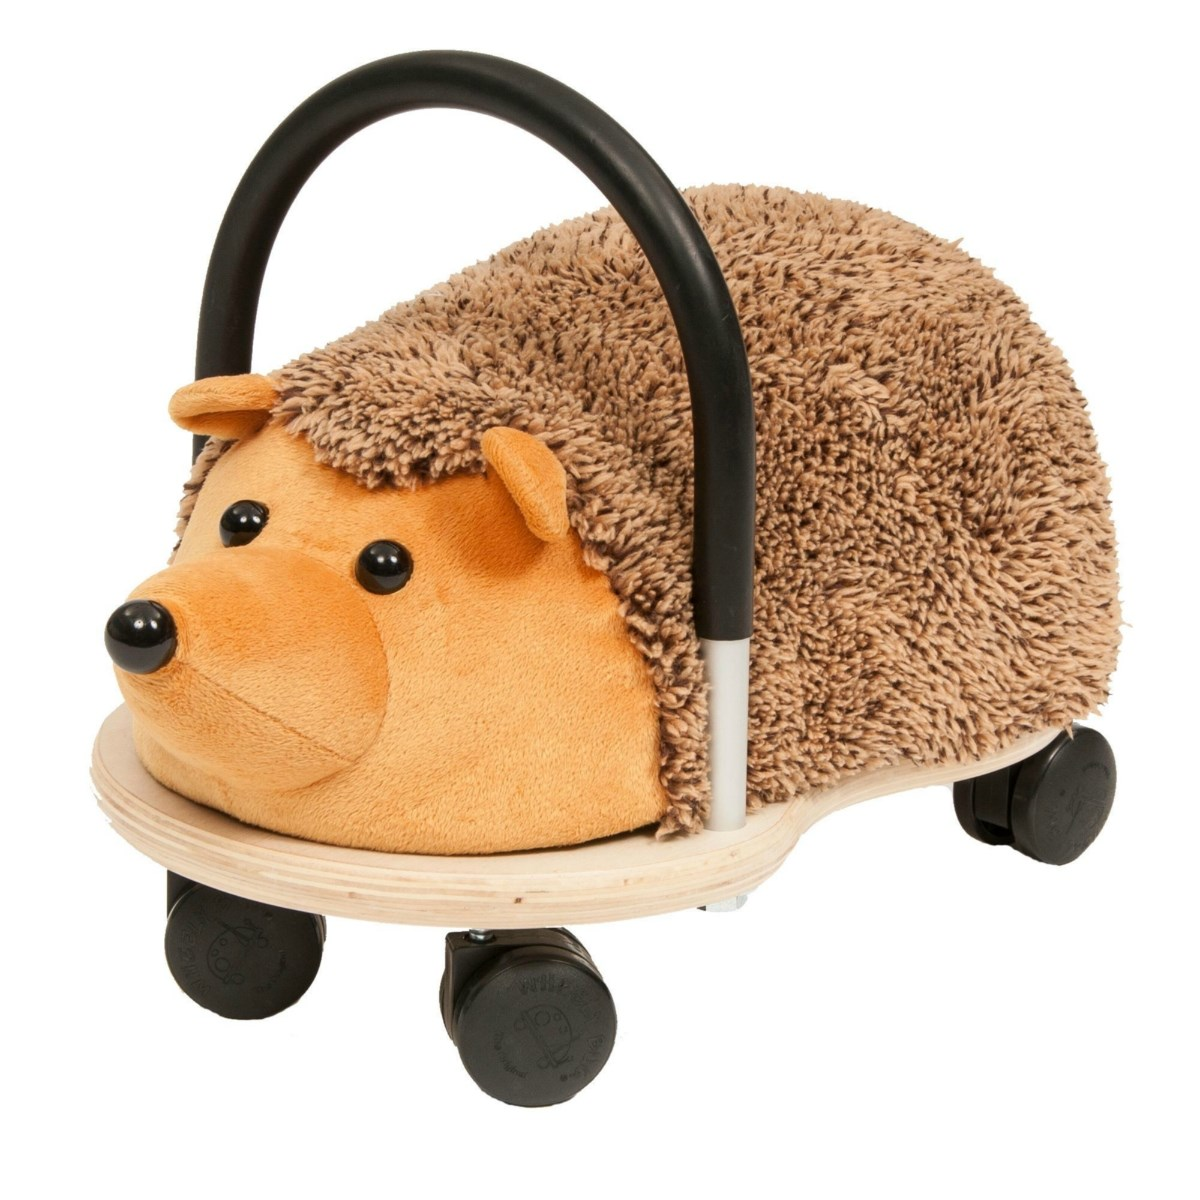 Wheelybug - Hedgehog - Small 1-3 Years